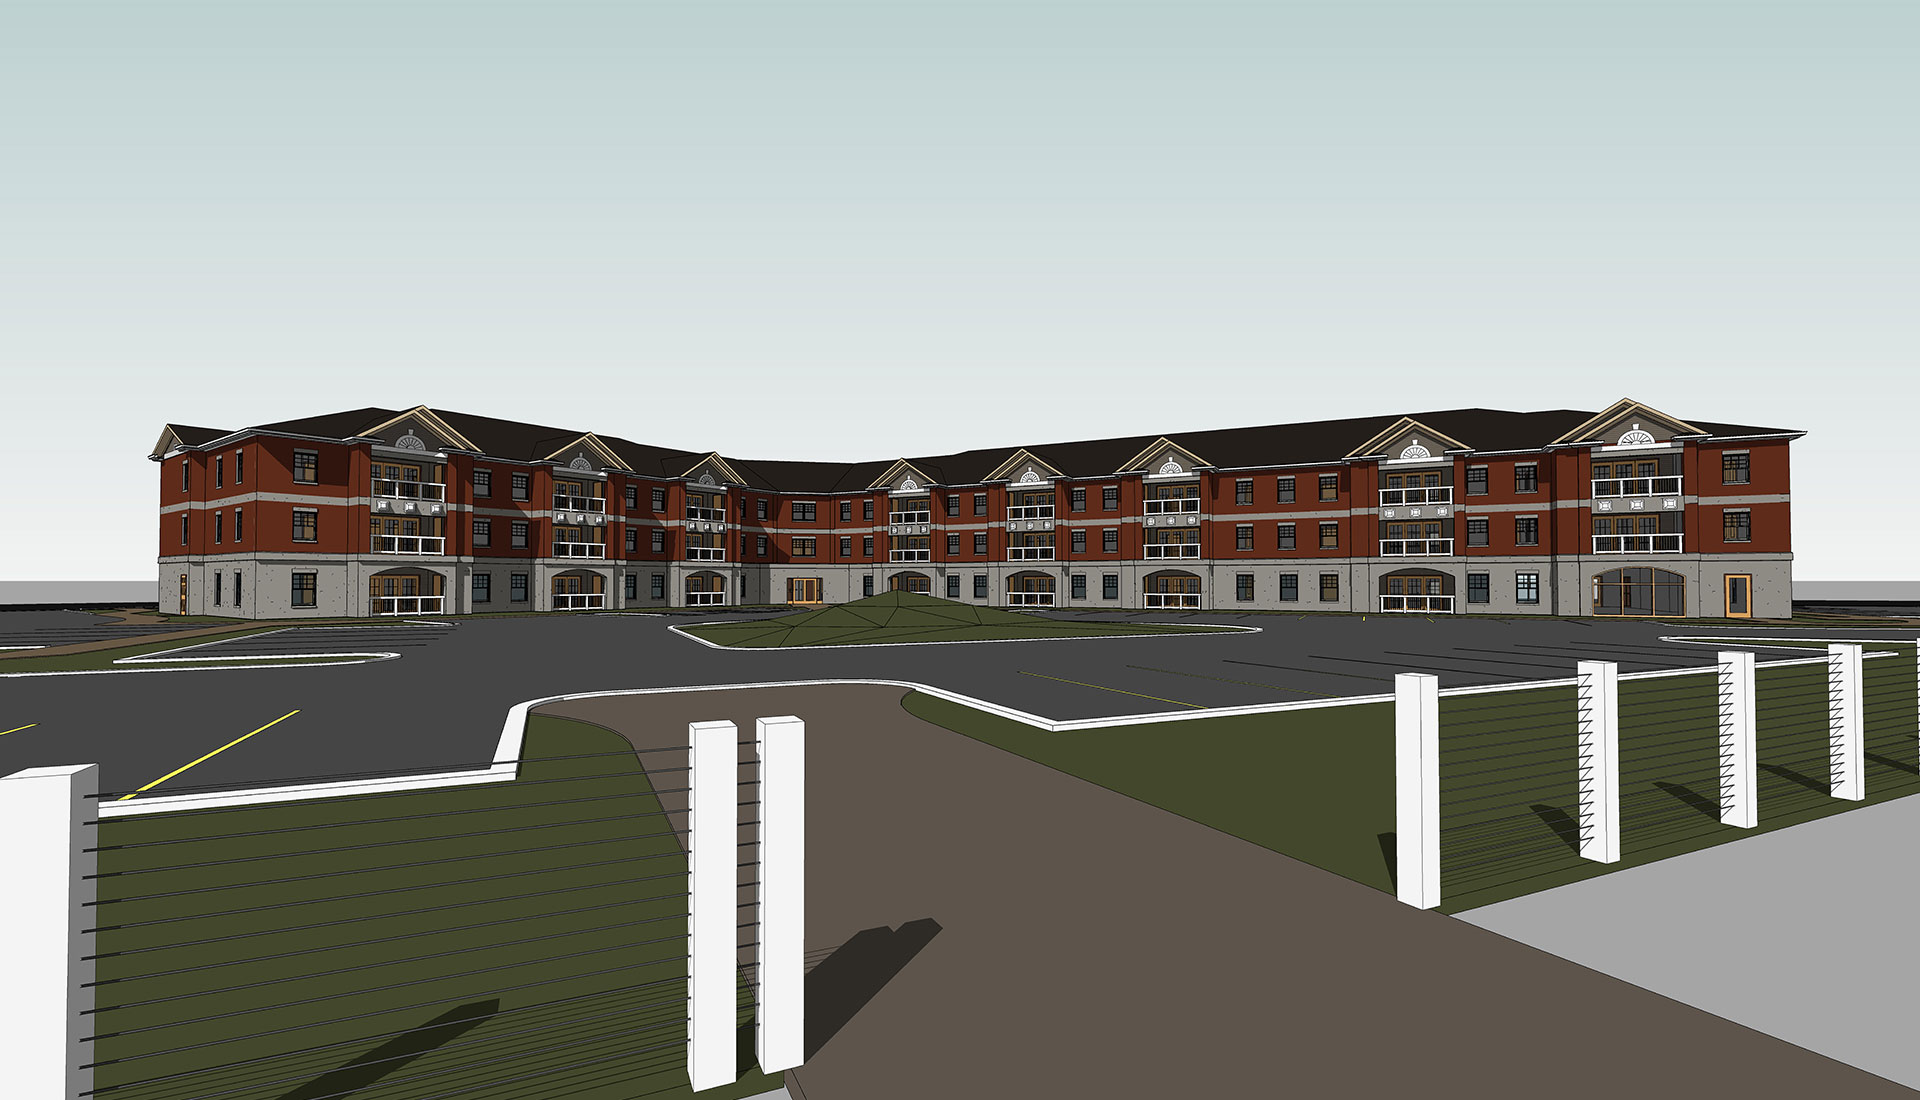 Complete-3D-BIM-Architectural-Model_Residential-Project_Architectural-Revit-Modeling-by-United-BIM